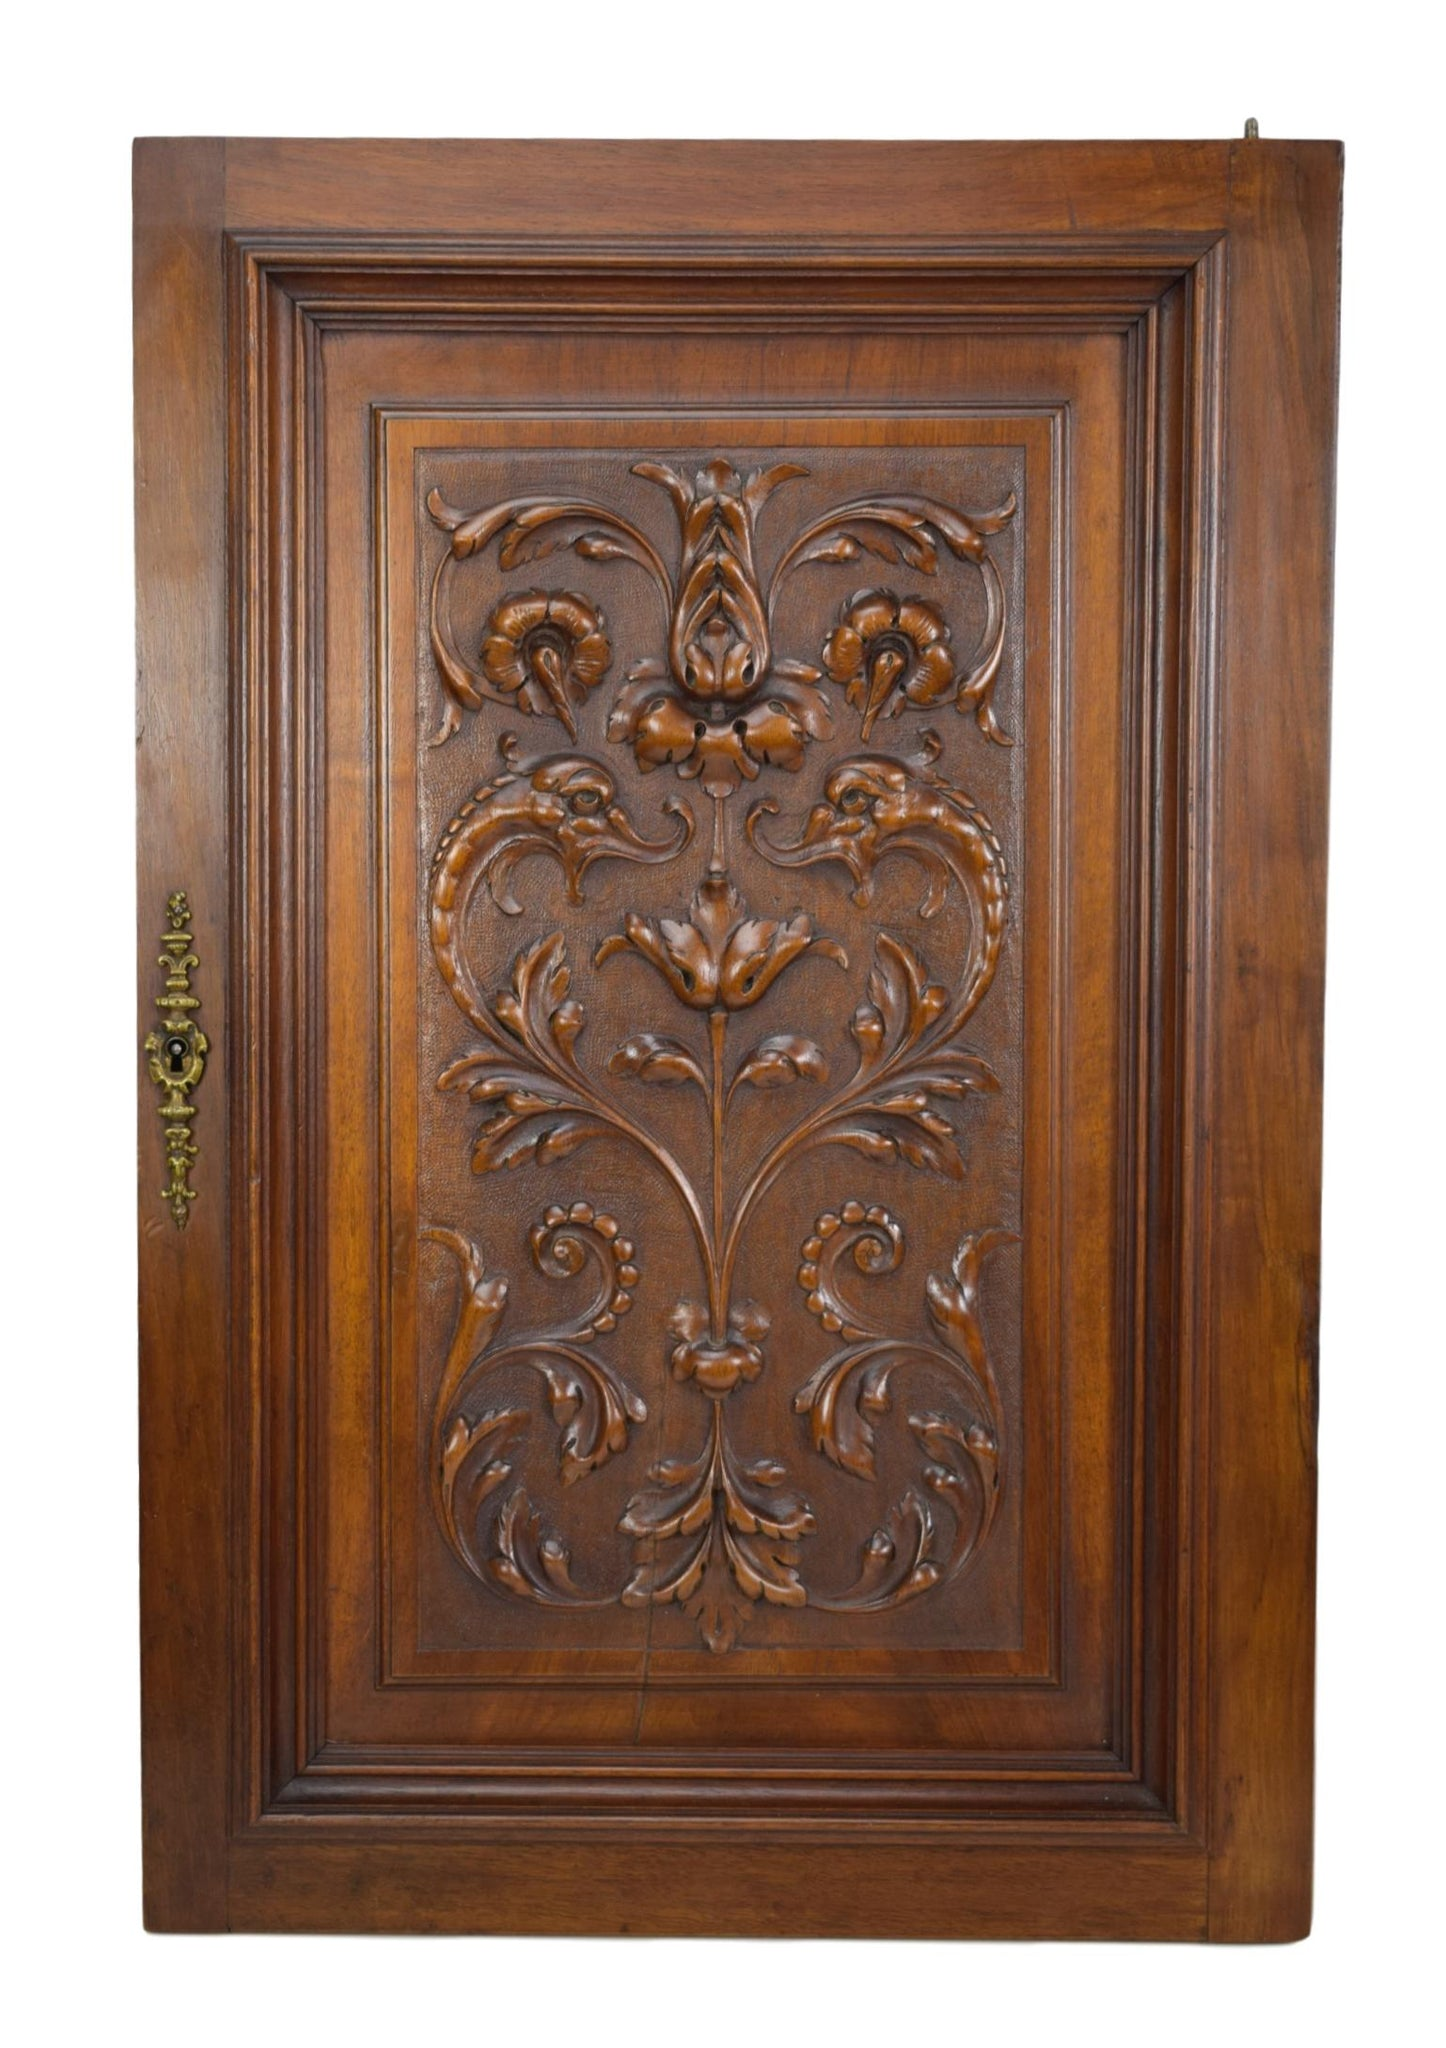 French Antique Neoclassical Carved Salvaged Wood Dolphin Door - Classicla Walnut Wood Wall Panel - Architectural Wood Salvage